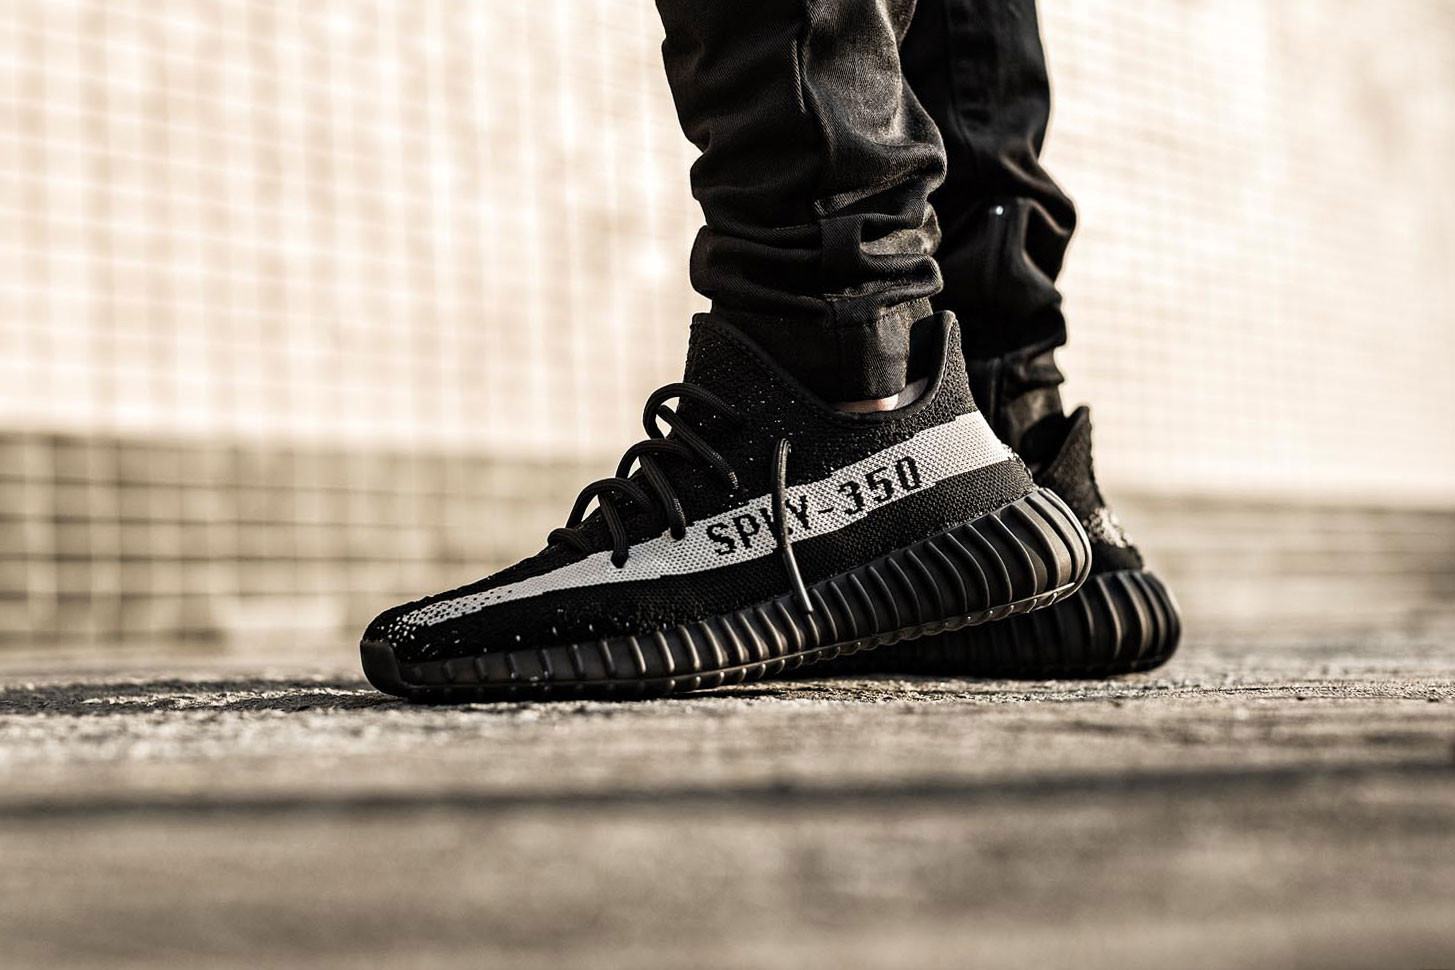 pretty nice 219c7 08f28 YEEZY BOOST 350 V2 CORE BLACK WHITE Store List | HYPEBEAST